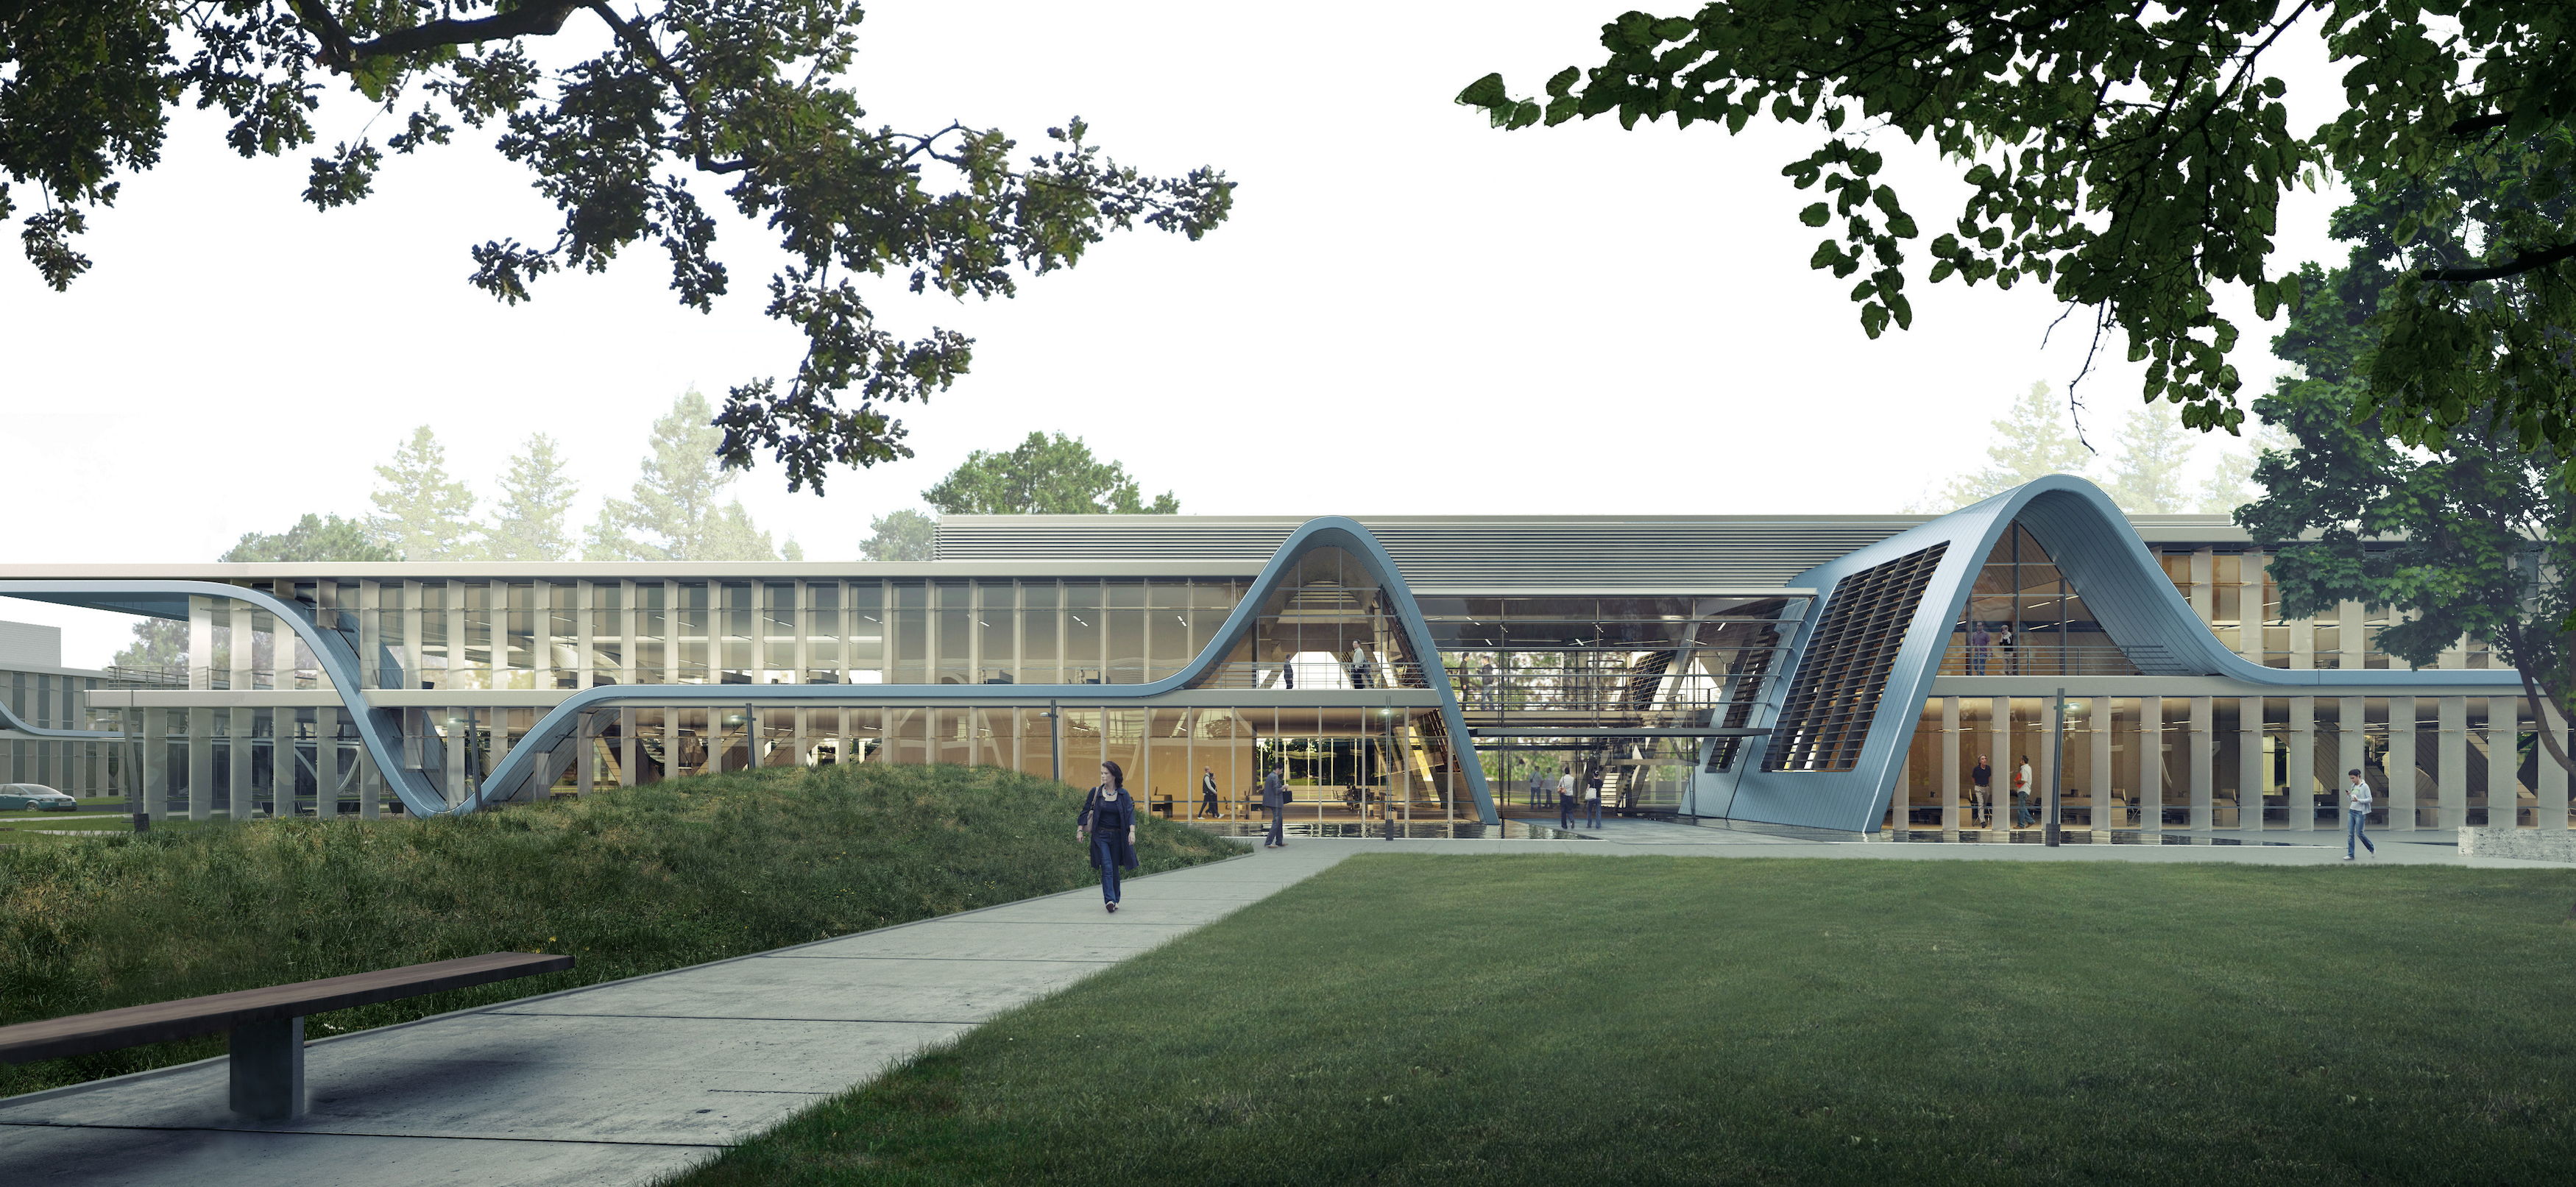 Form4 Designs Curved Roofs For Project At Stanford Research Park Building Design Construction